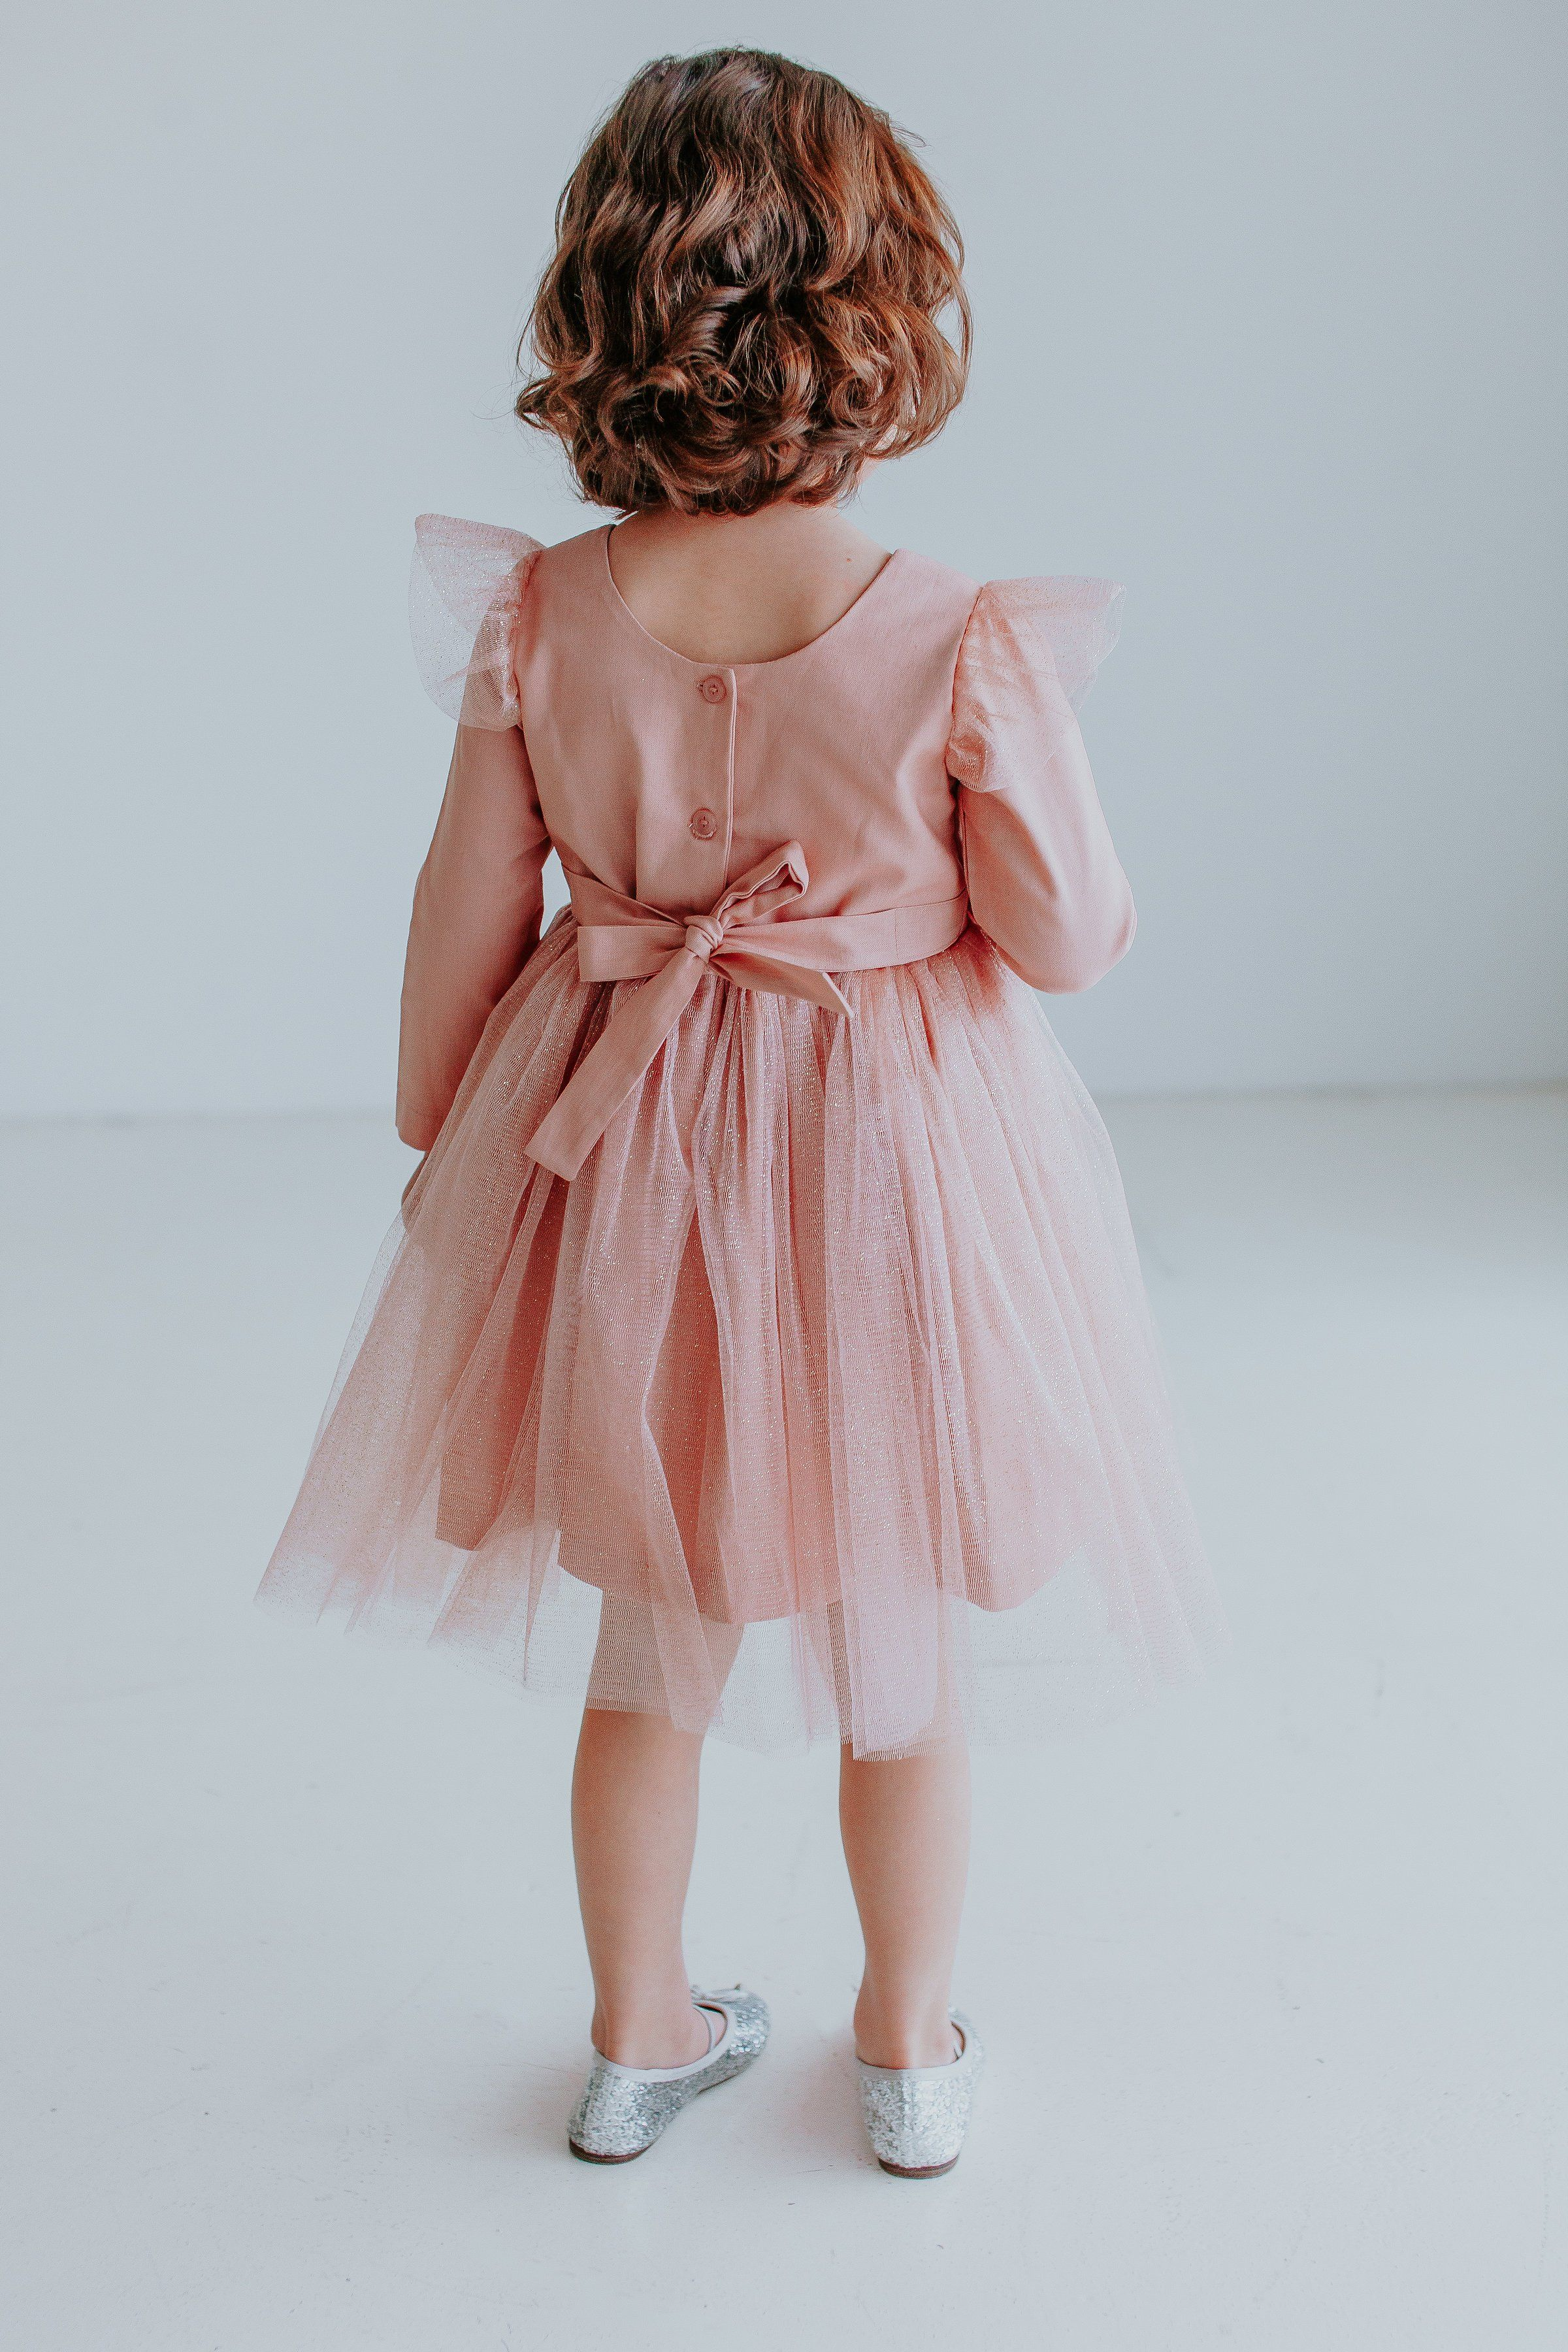 "cuteheads ""Giselle"" Dress Children Pinterest"